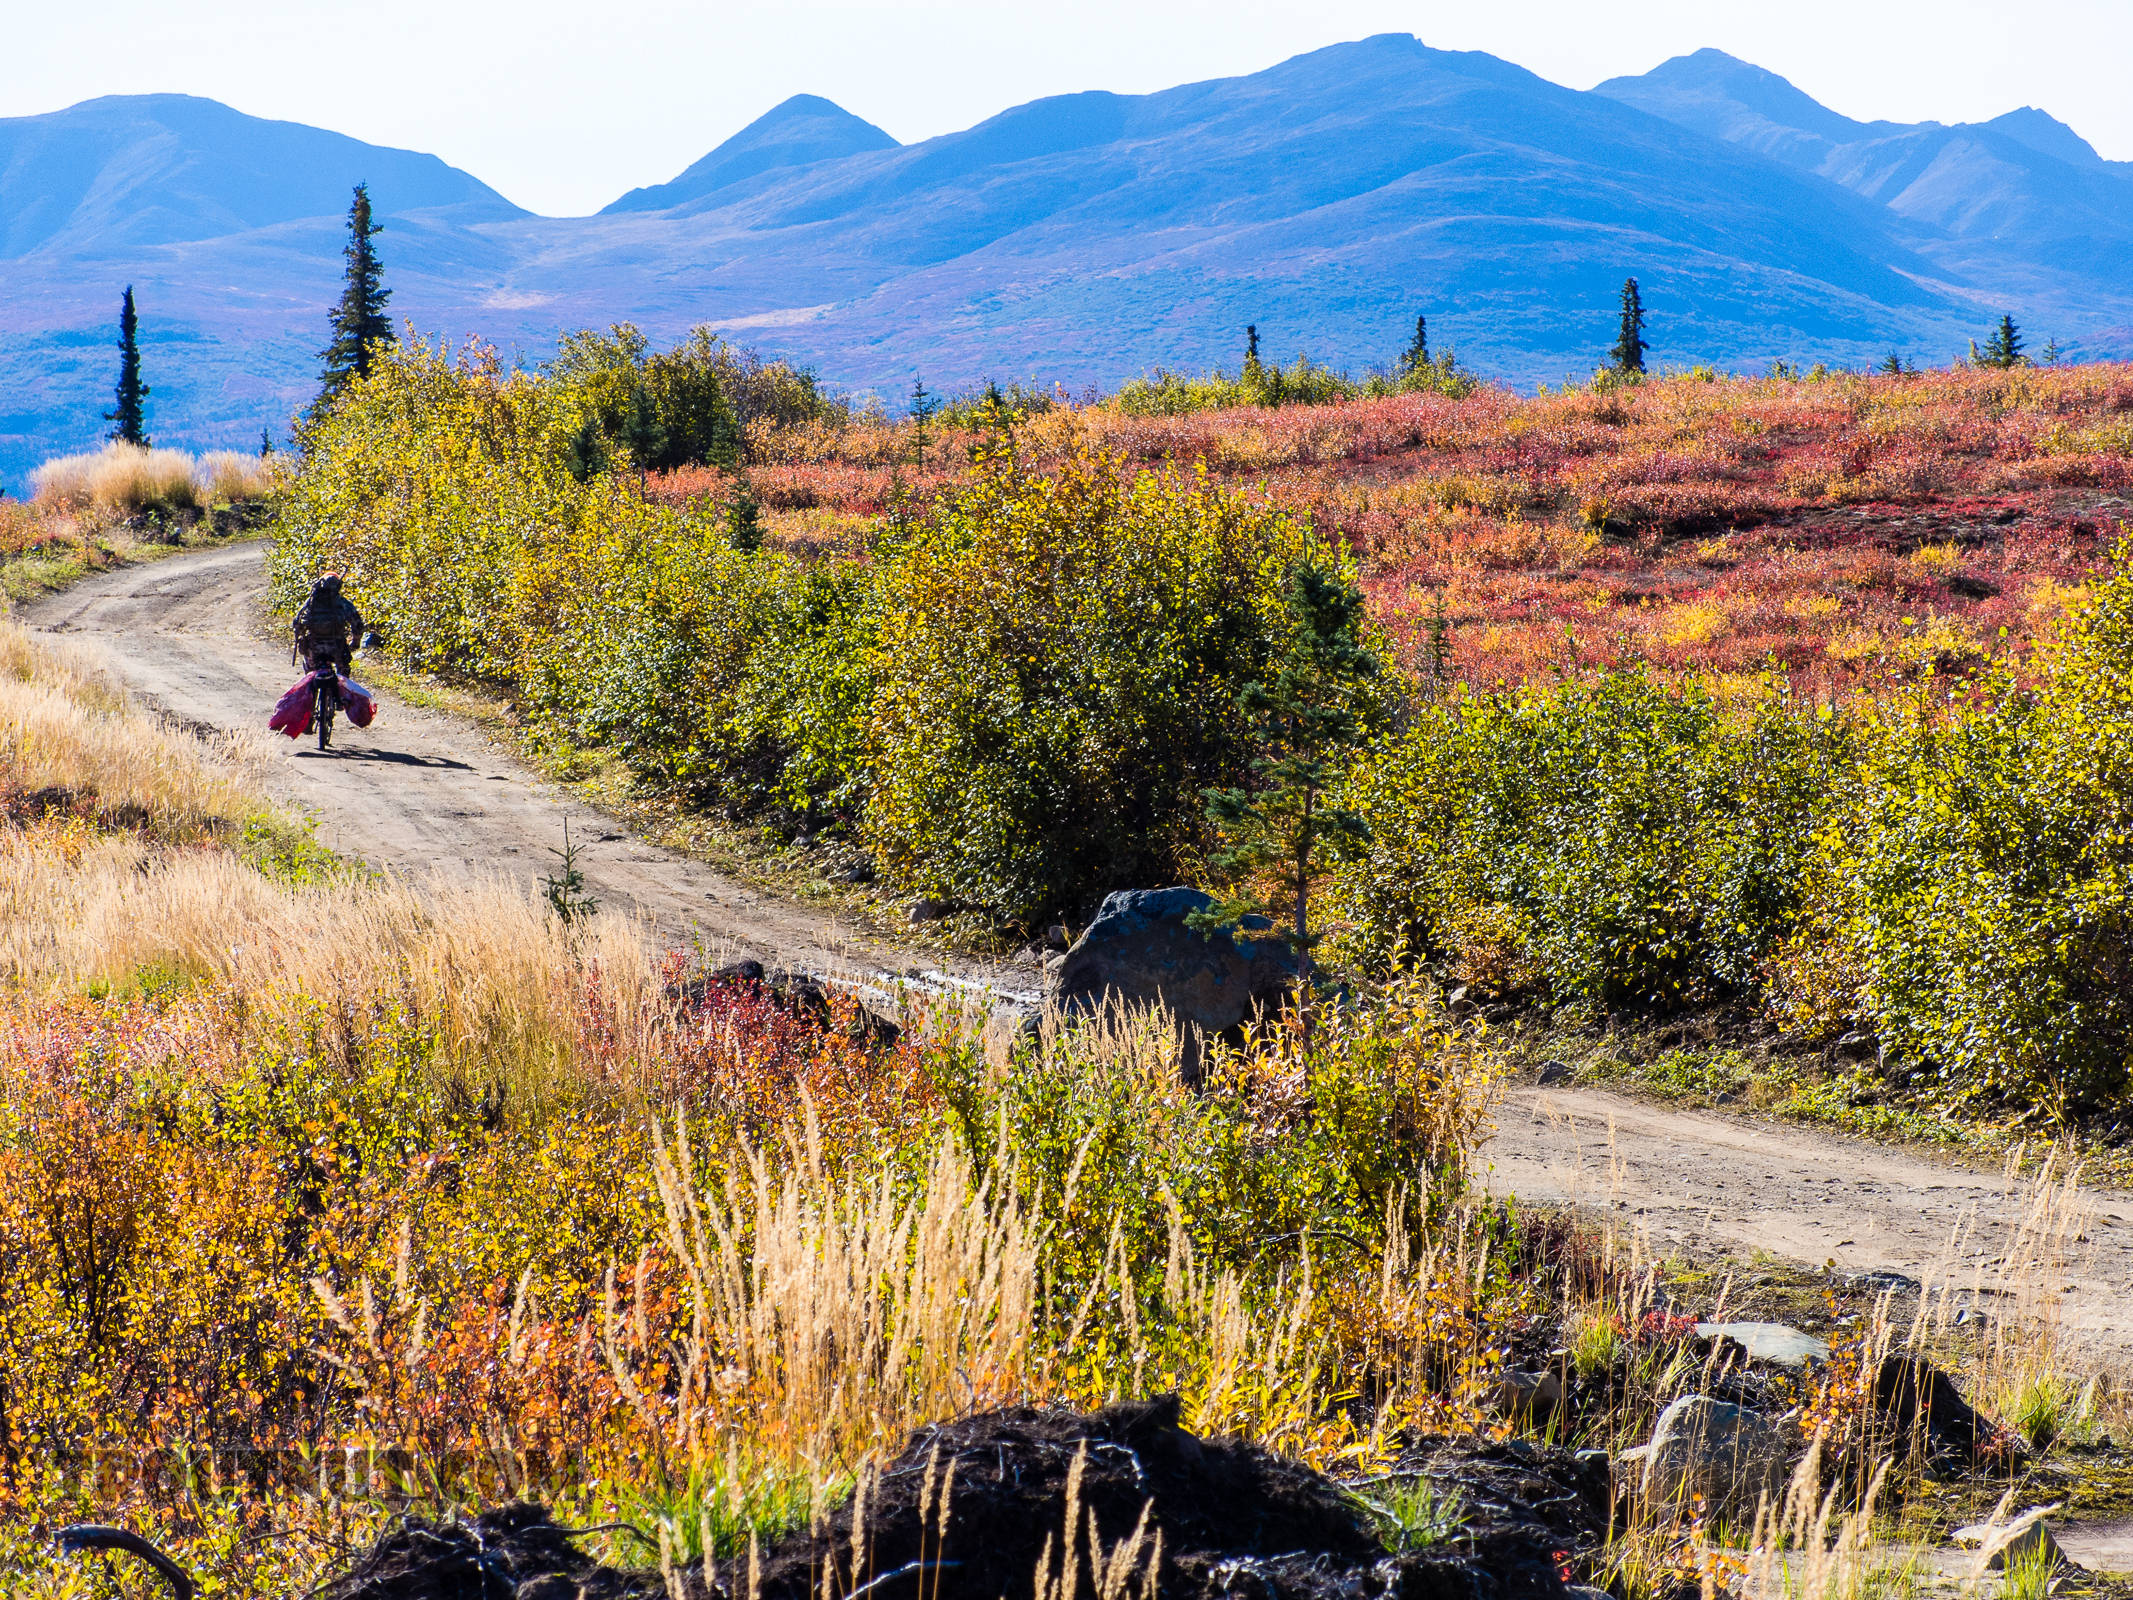 Riding out 2 From Clearwater Mountains in Alaska.